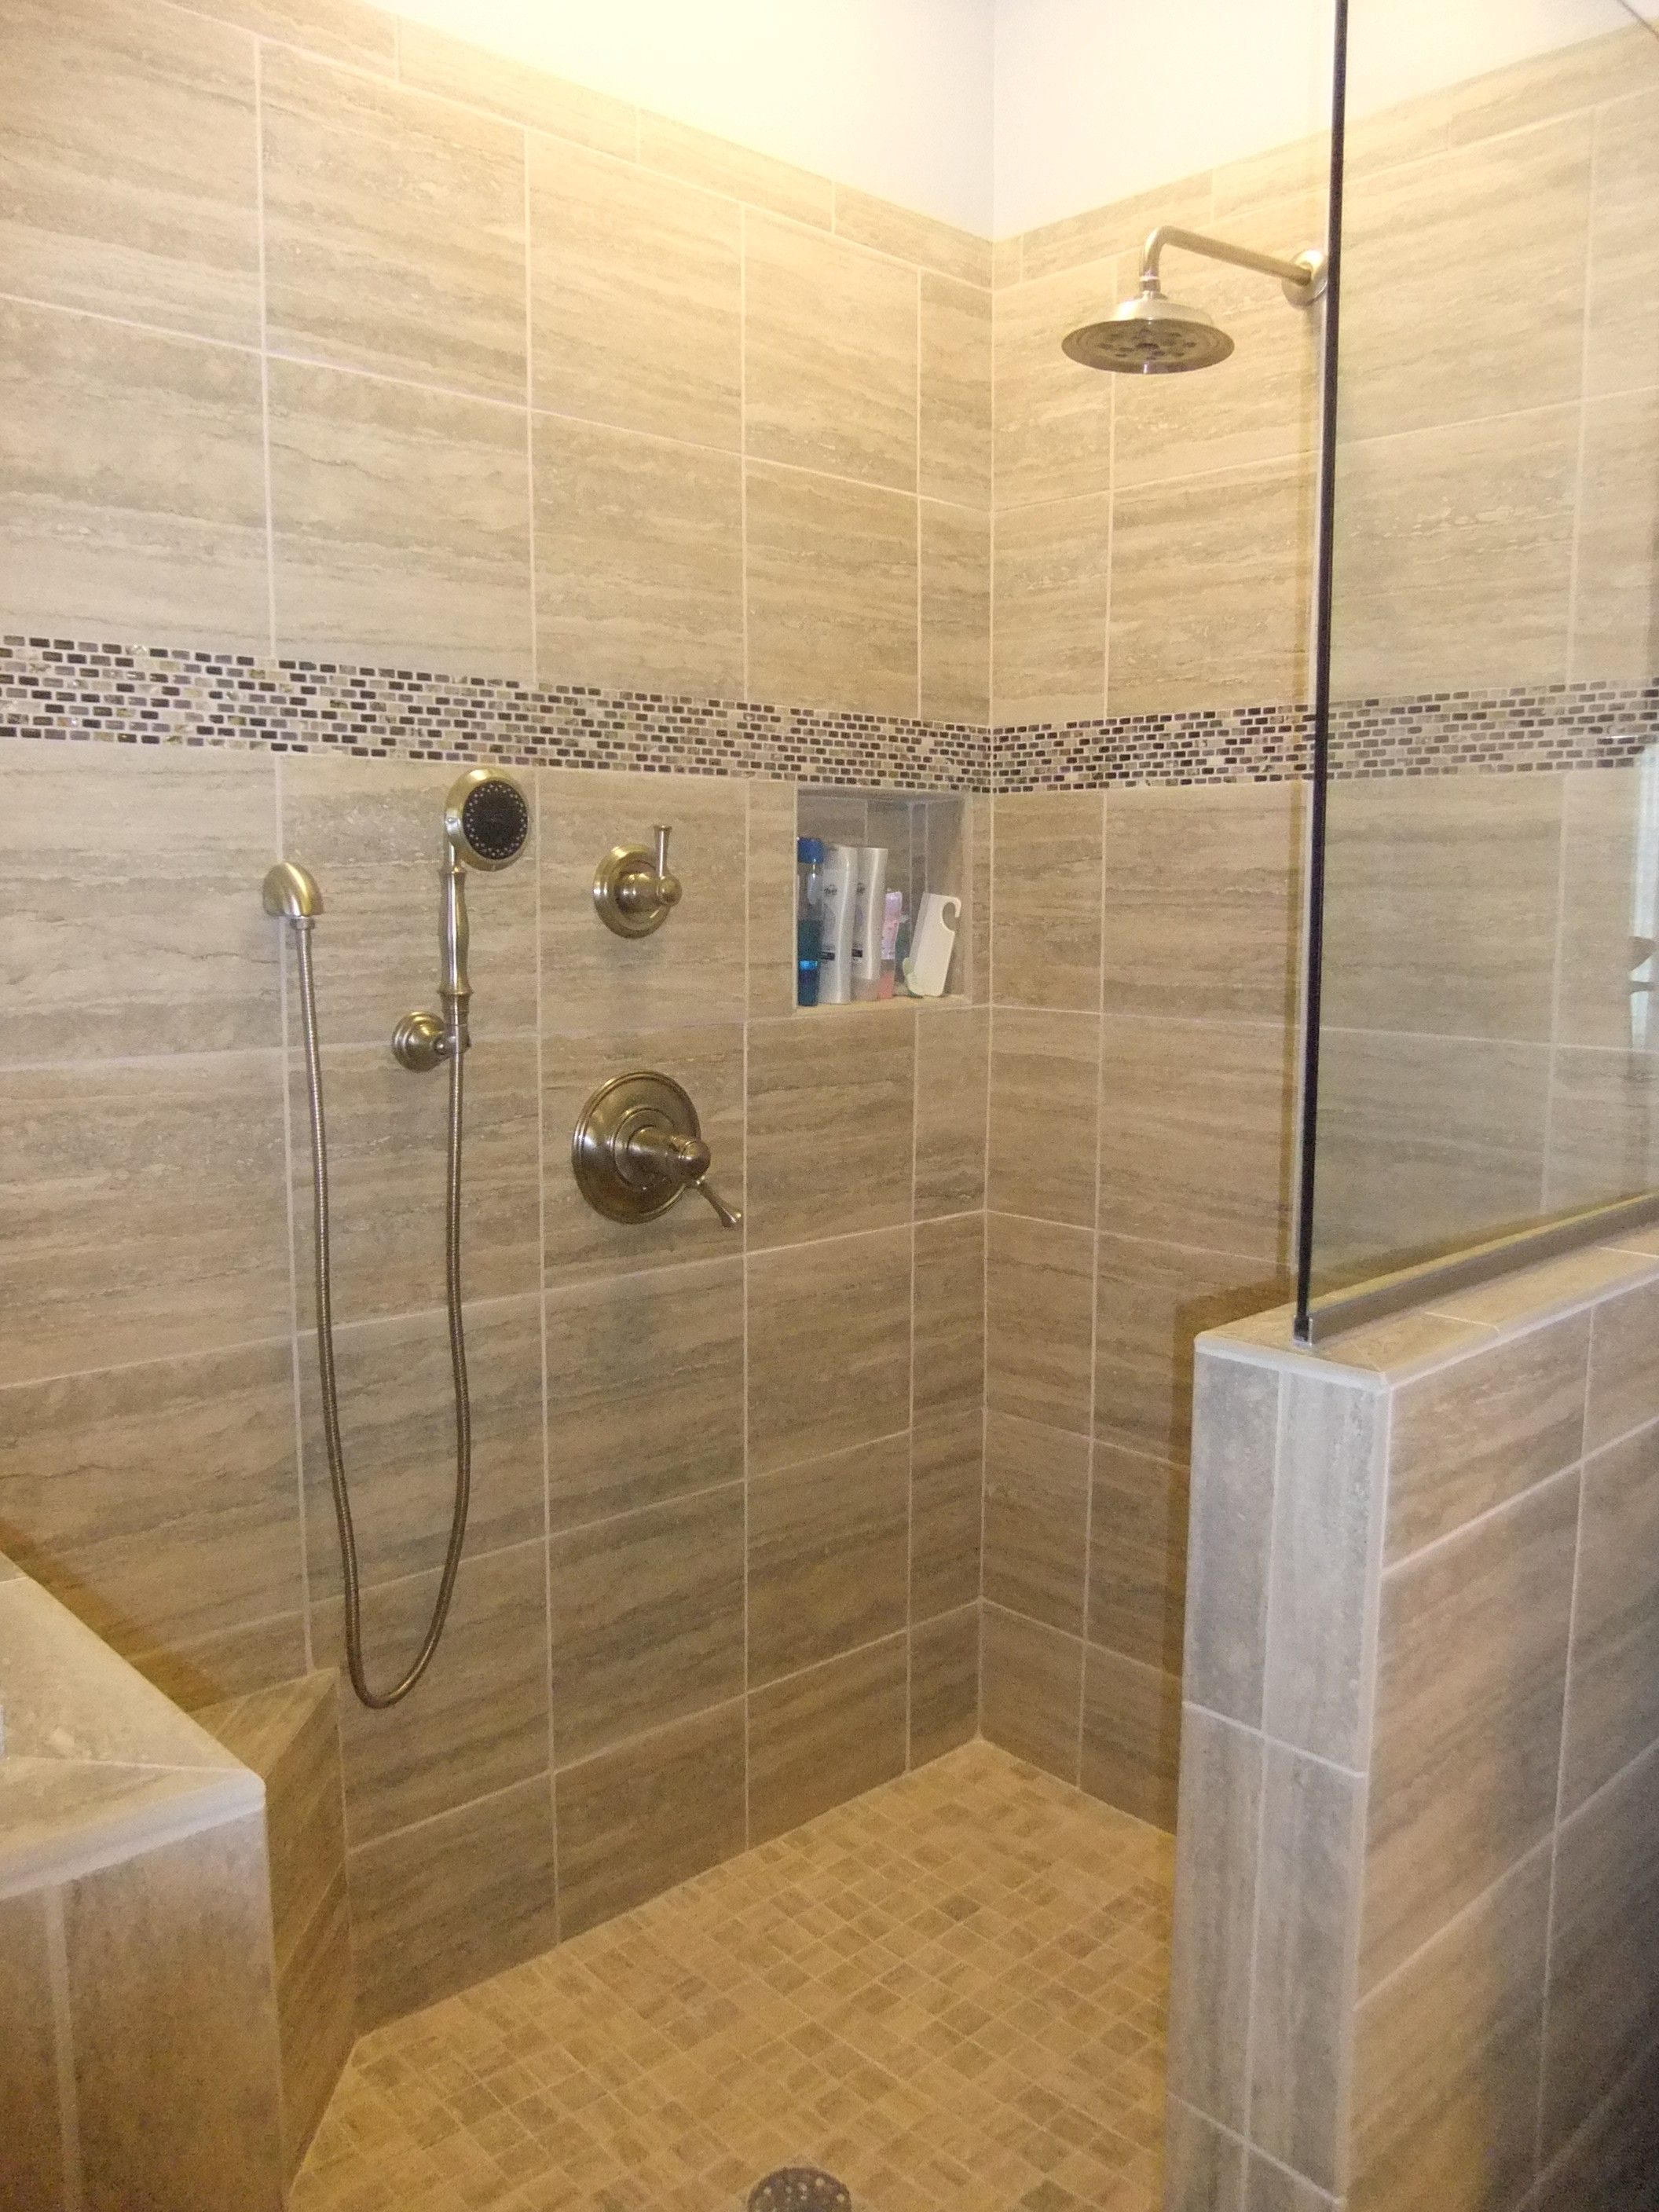 The White Seat Also Ties The Bench To The Mosaic Tile Niches And River Rock Tile Floor De Small Bathroom With Shower Showers Without Doors Tile Walk In Shower